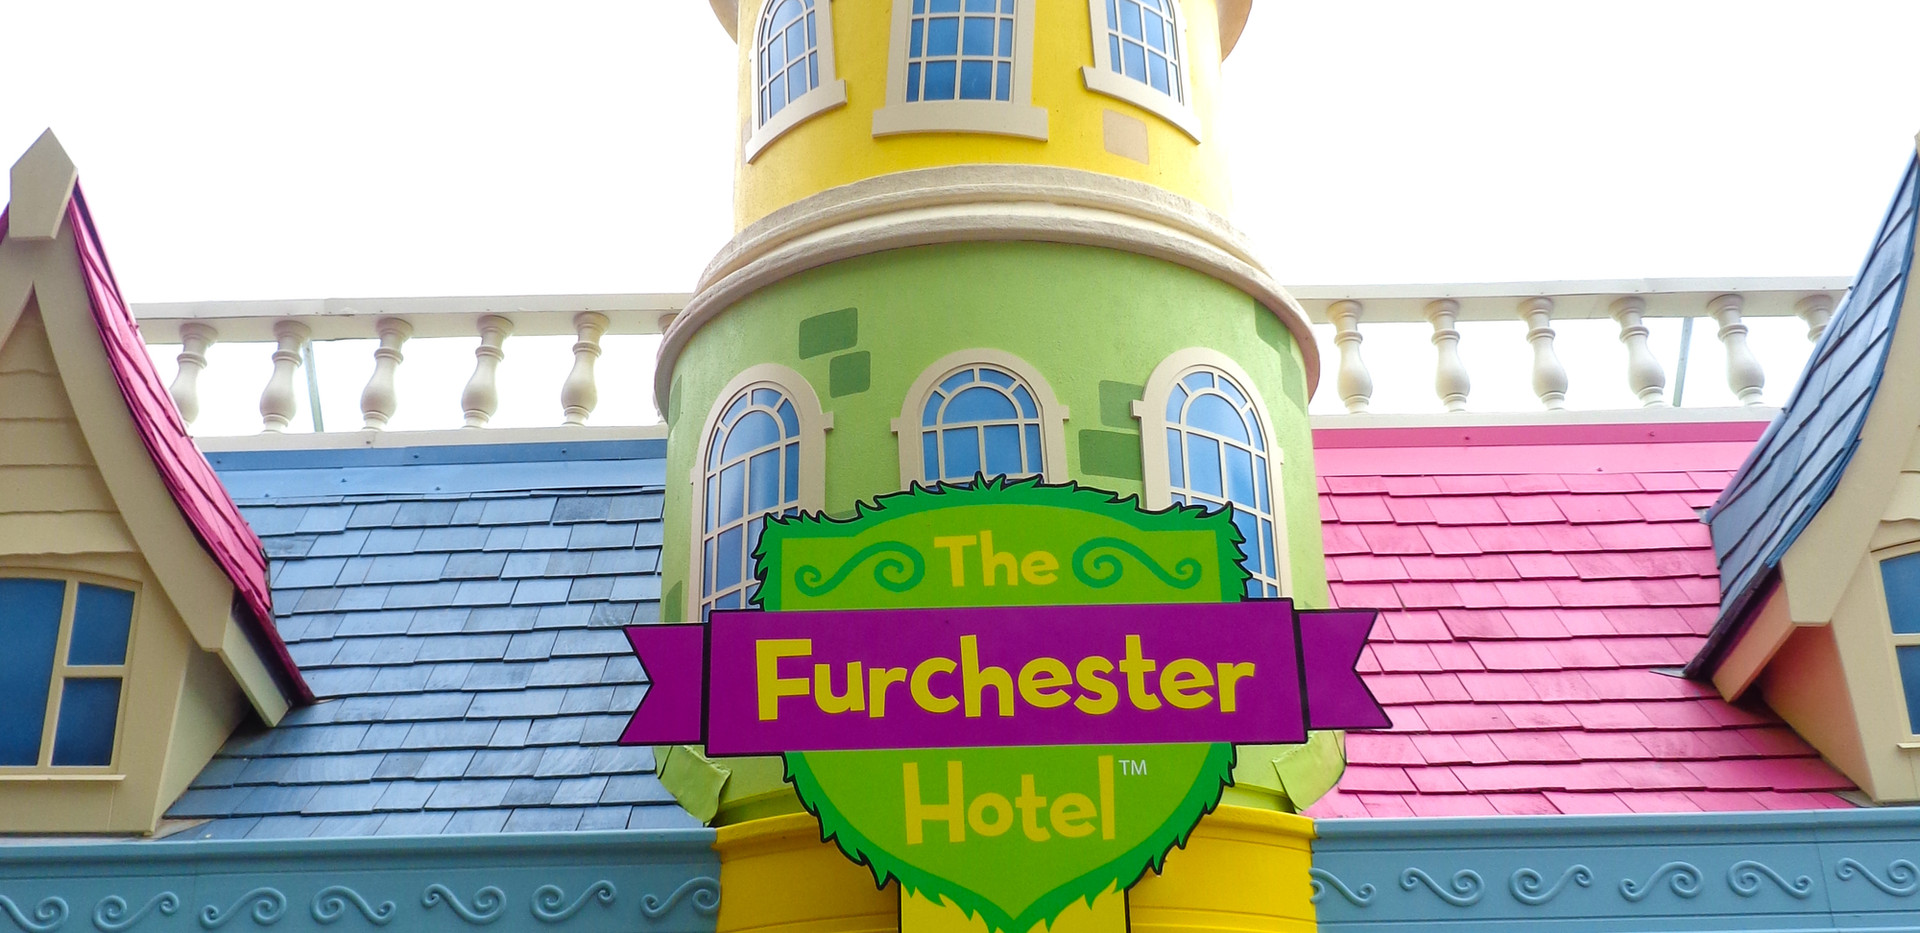 Furchester Hotel Live sign